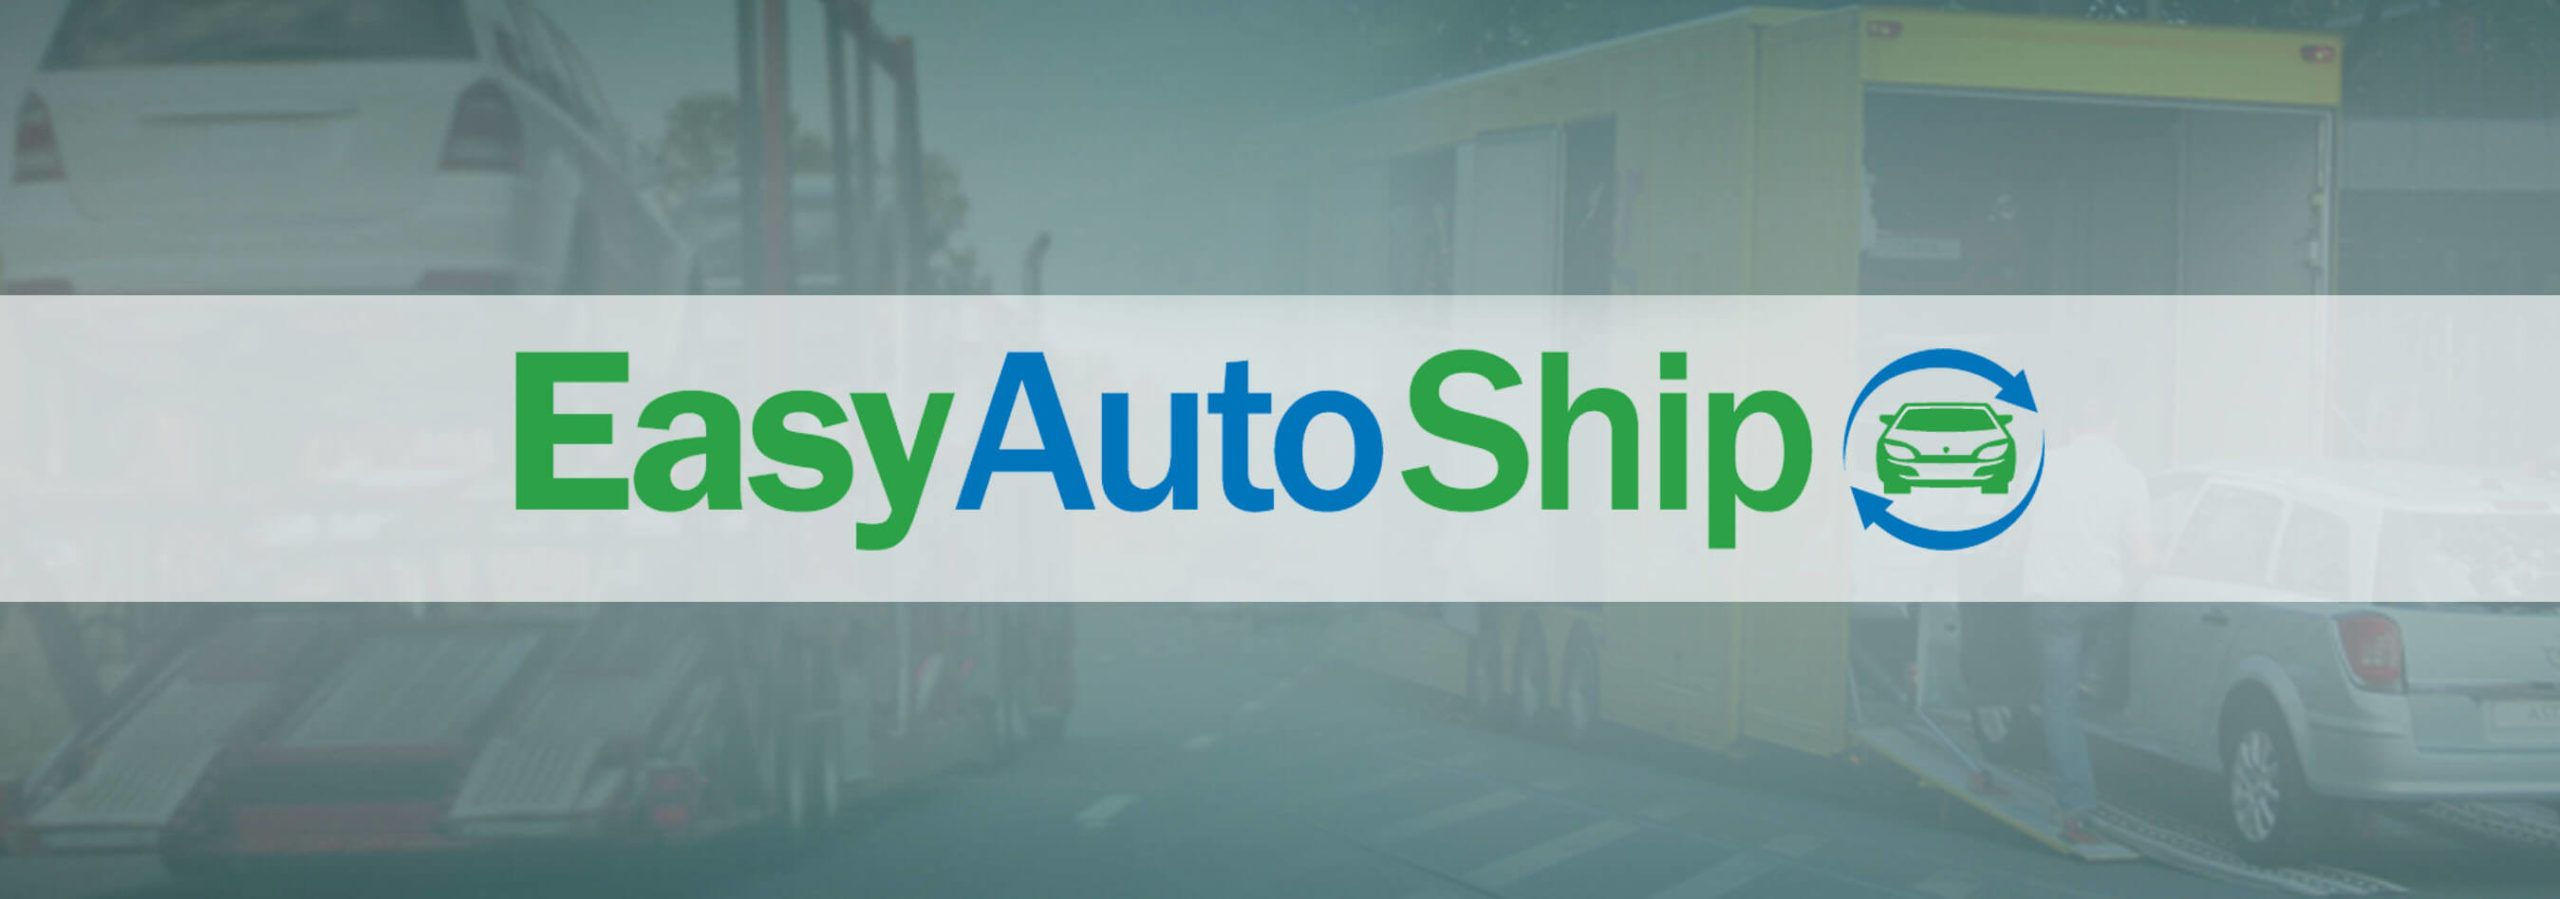 easy auto ship, About Us